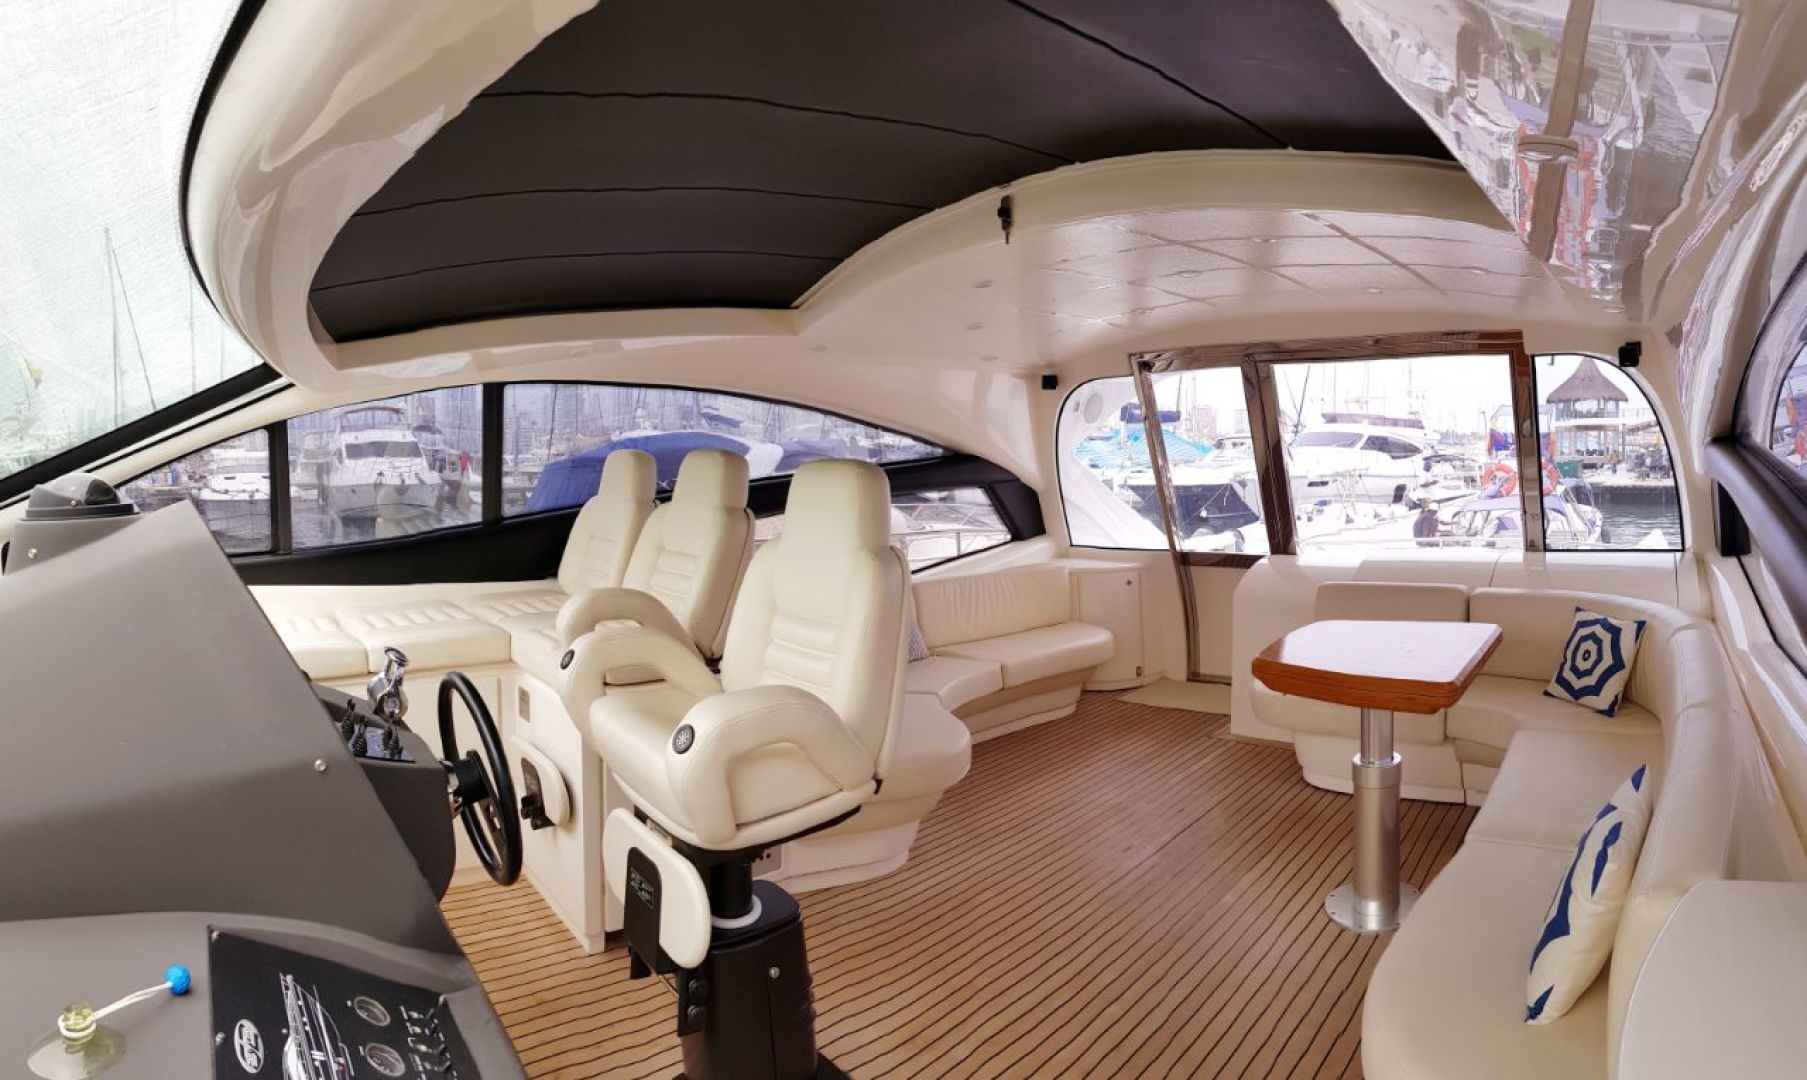 Pershing-62 2007 -Cancun-Mexico-2007 PERSHING 62 FOR SALE-1134389 | Thumbnail